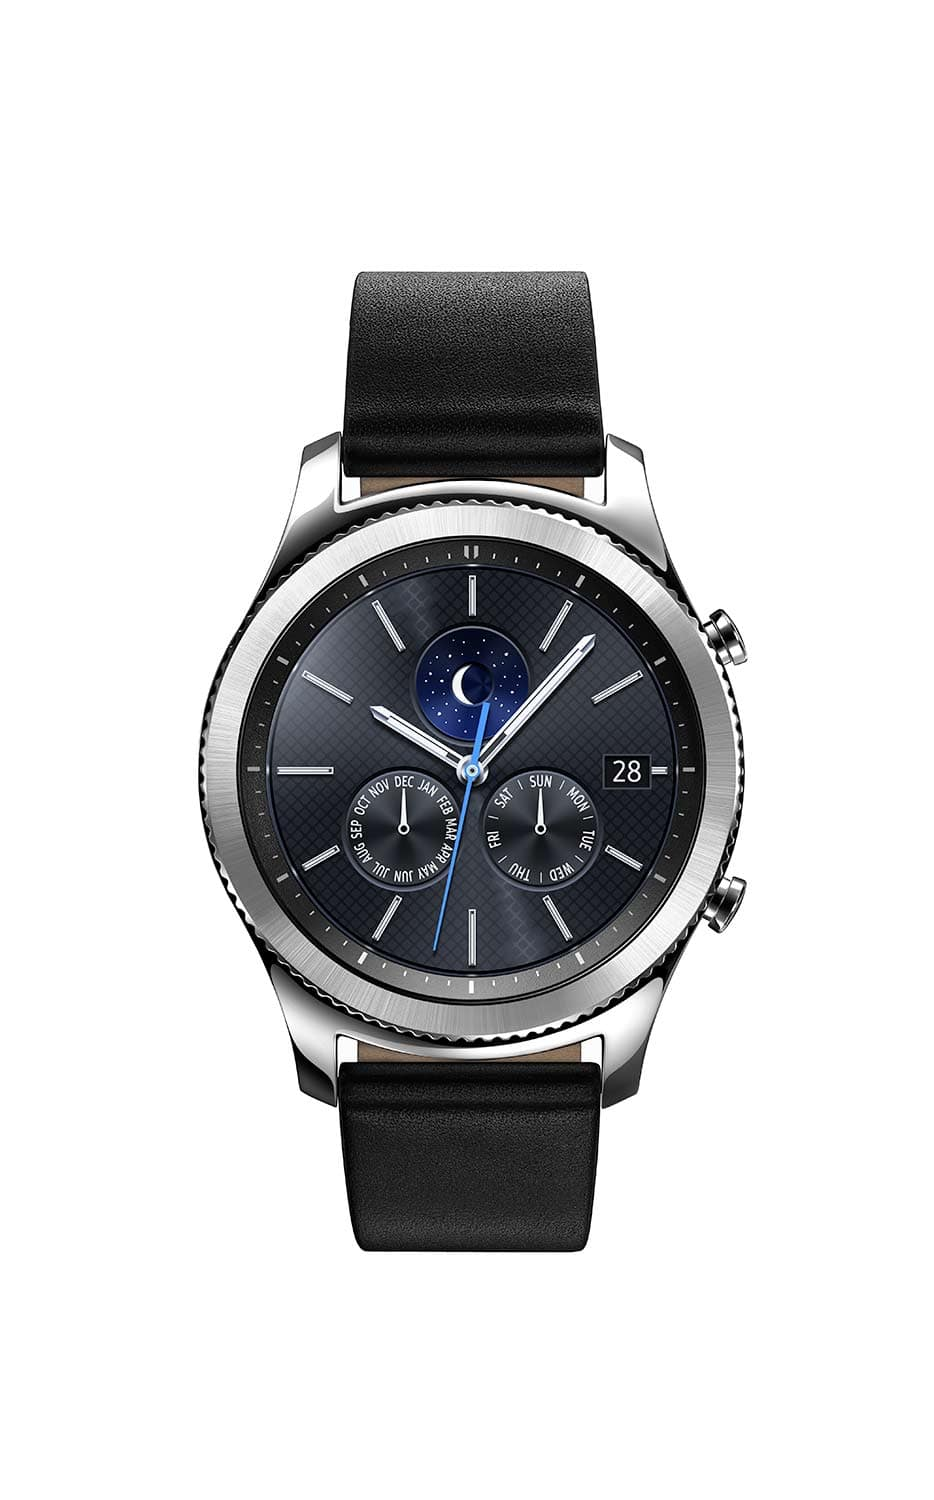 Samsung Gear S3 classic $192.00 (T-Mobile)